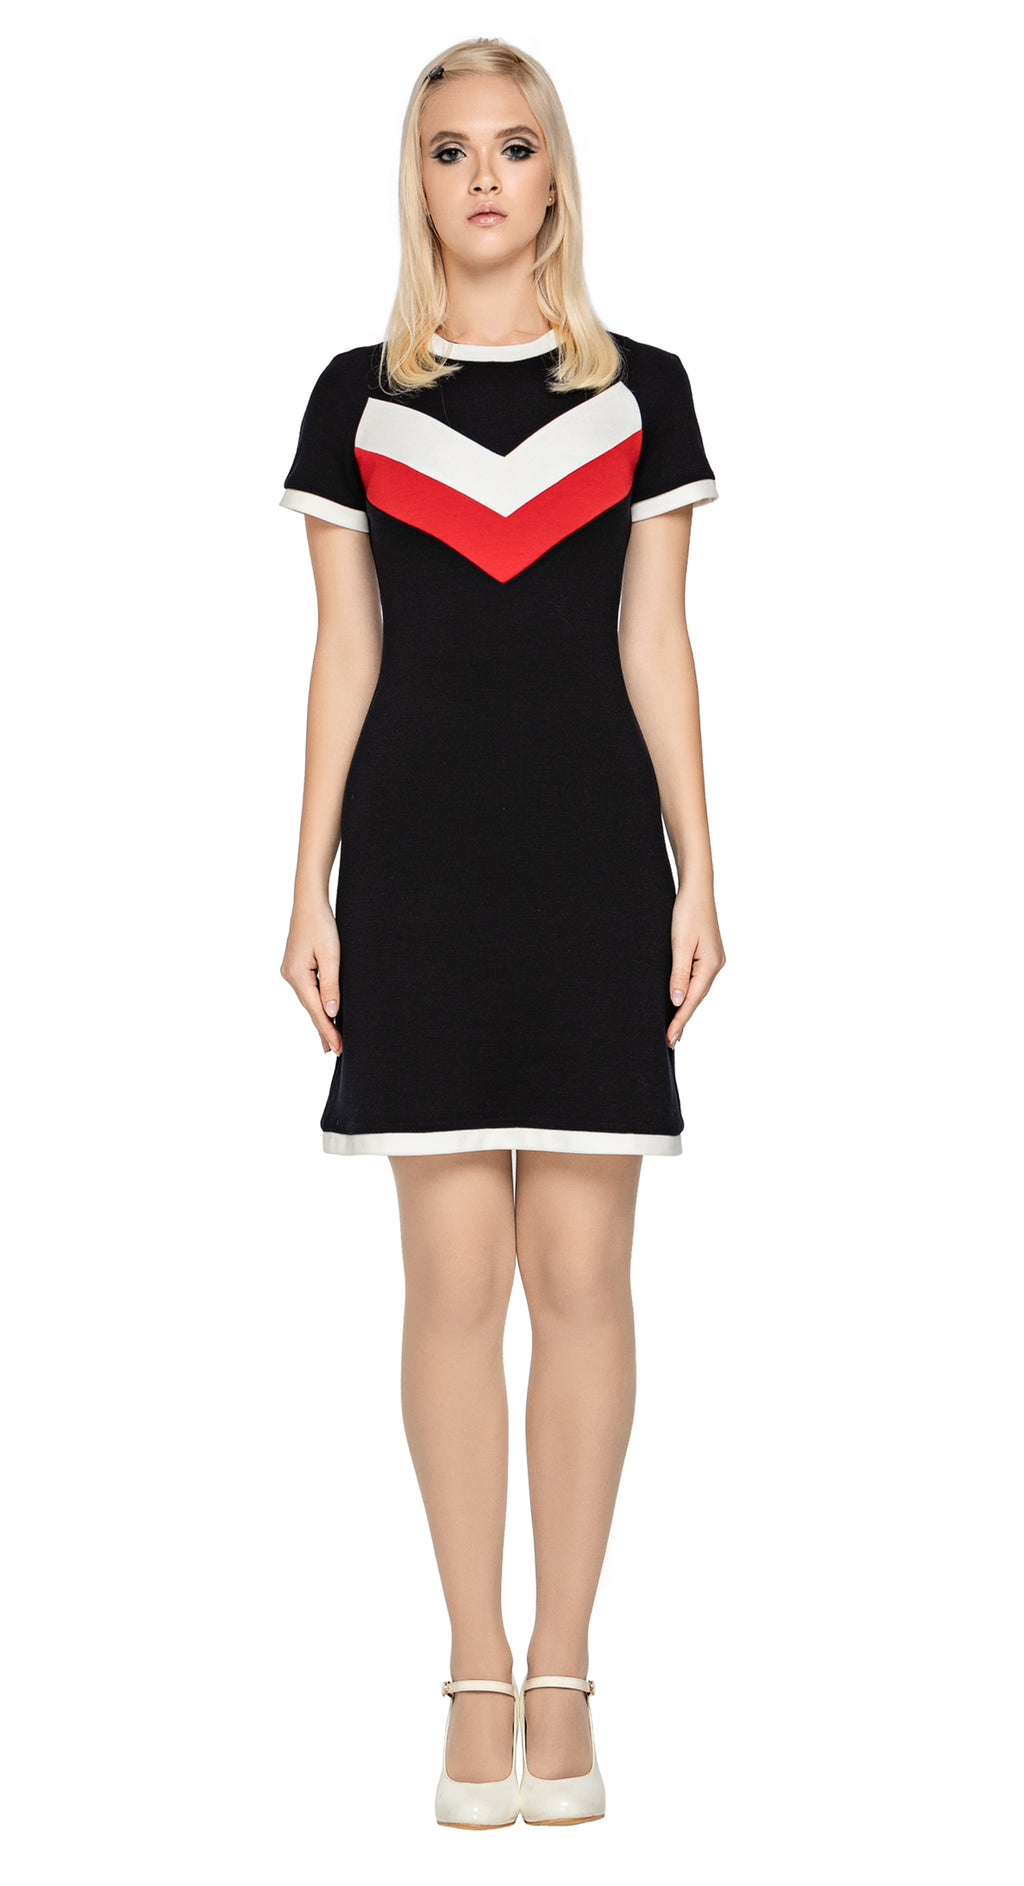 Tri-colour fitted medium weight Italian jersey dress with modernist chevron design.  Dark navy body with red and light cream contrast. Light cream hem and cuff detailing add to the retro look. Ideal & comfortable work or play wear with a high fashion presence.  Pairs incredibly with our Tri-Colour Jersey Jacket for an undeniably cool and casual set.  Fabric provides generous stretch. Back zipper closure.